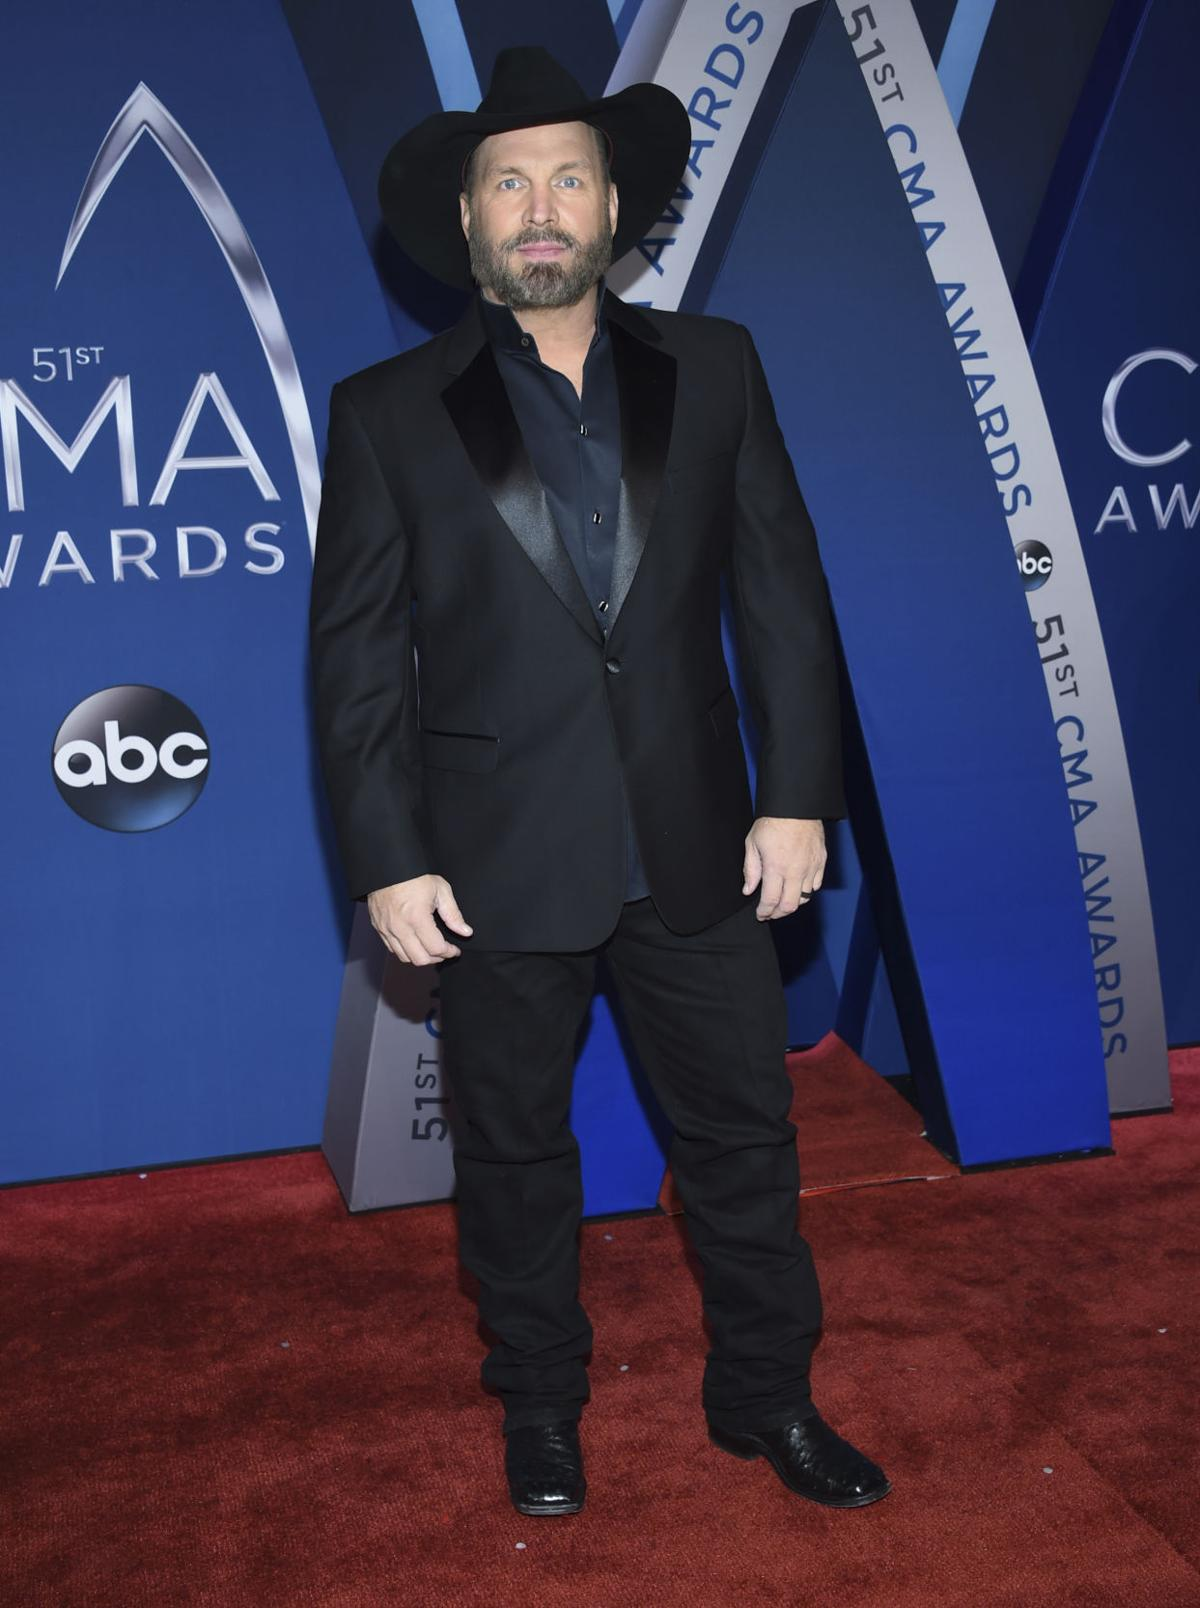 s Scenes from the red carpet at the 2017 CMA Awards